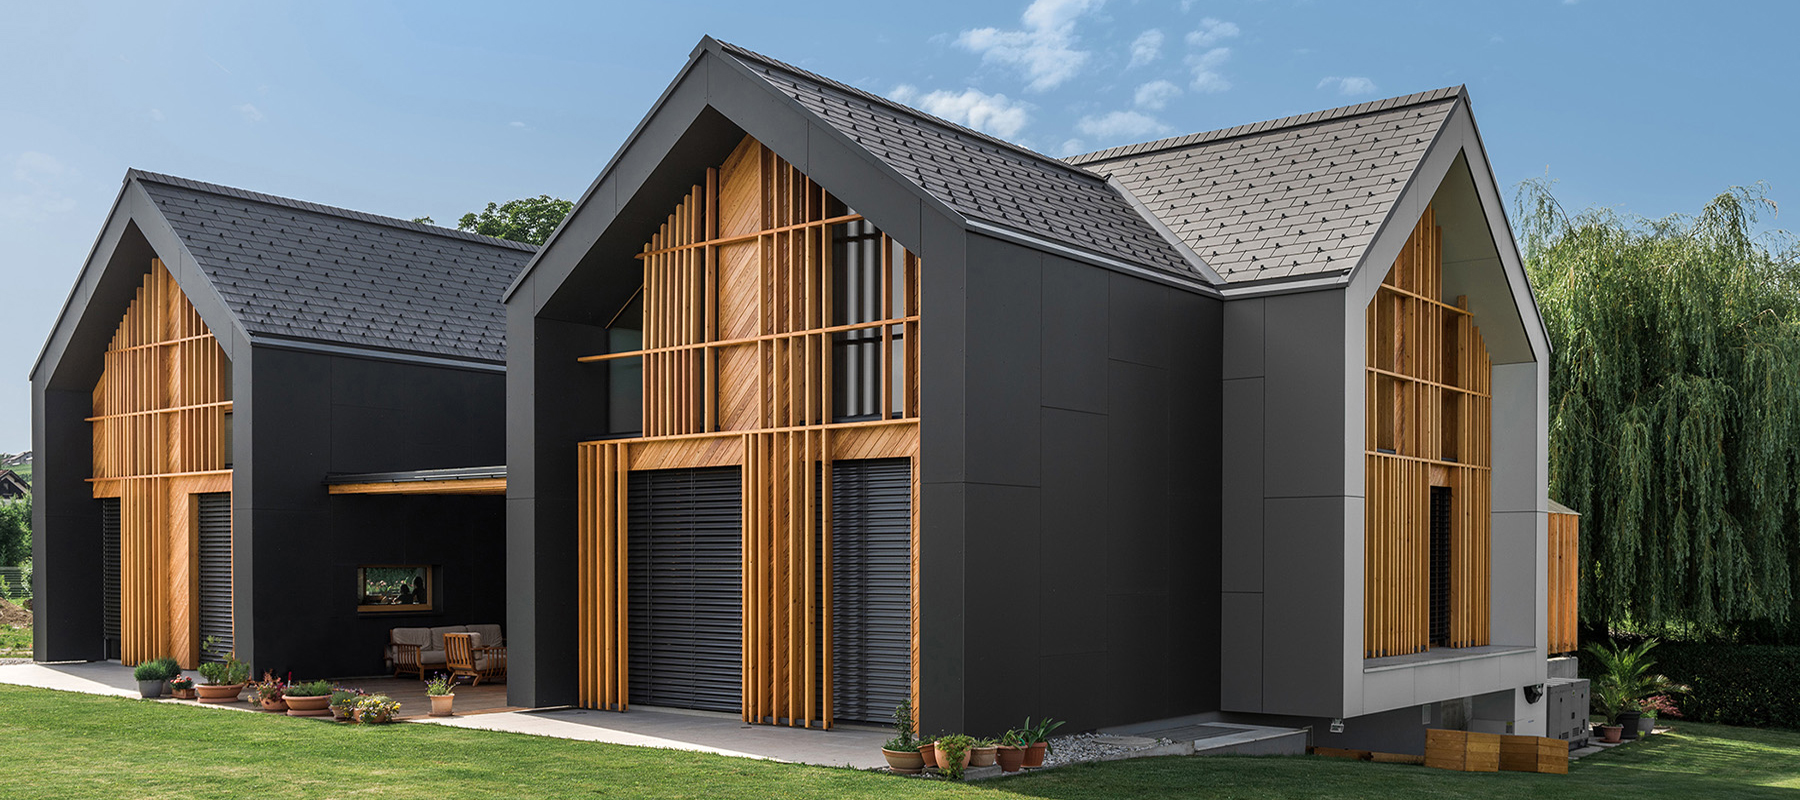 All black house design of three gabled volumes digsdigs - Three wooden house plans ...